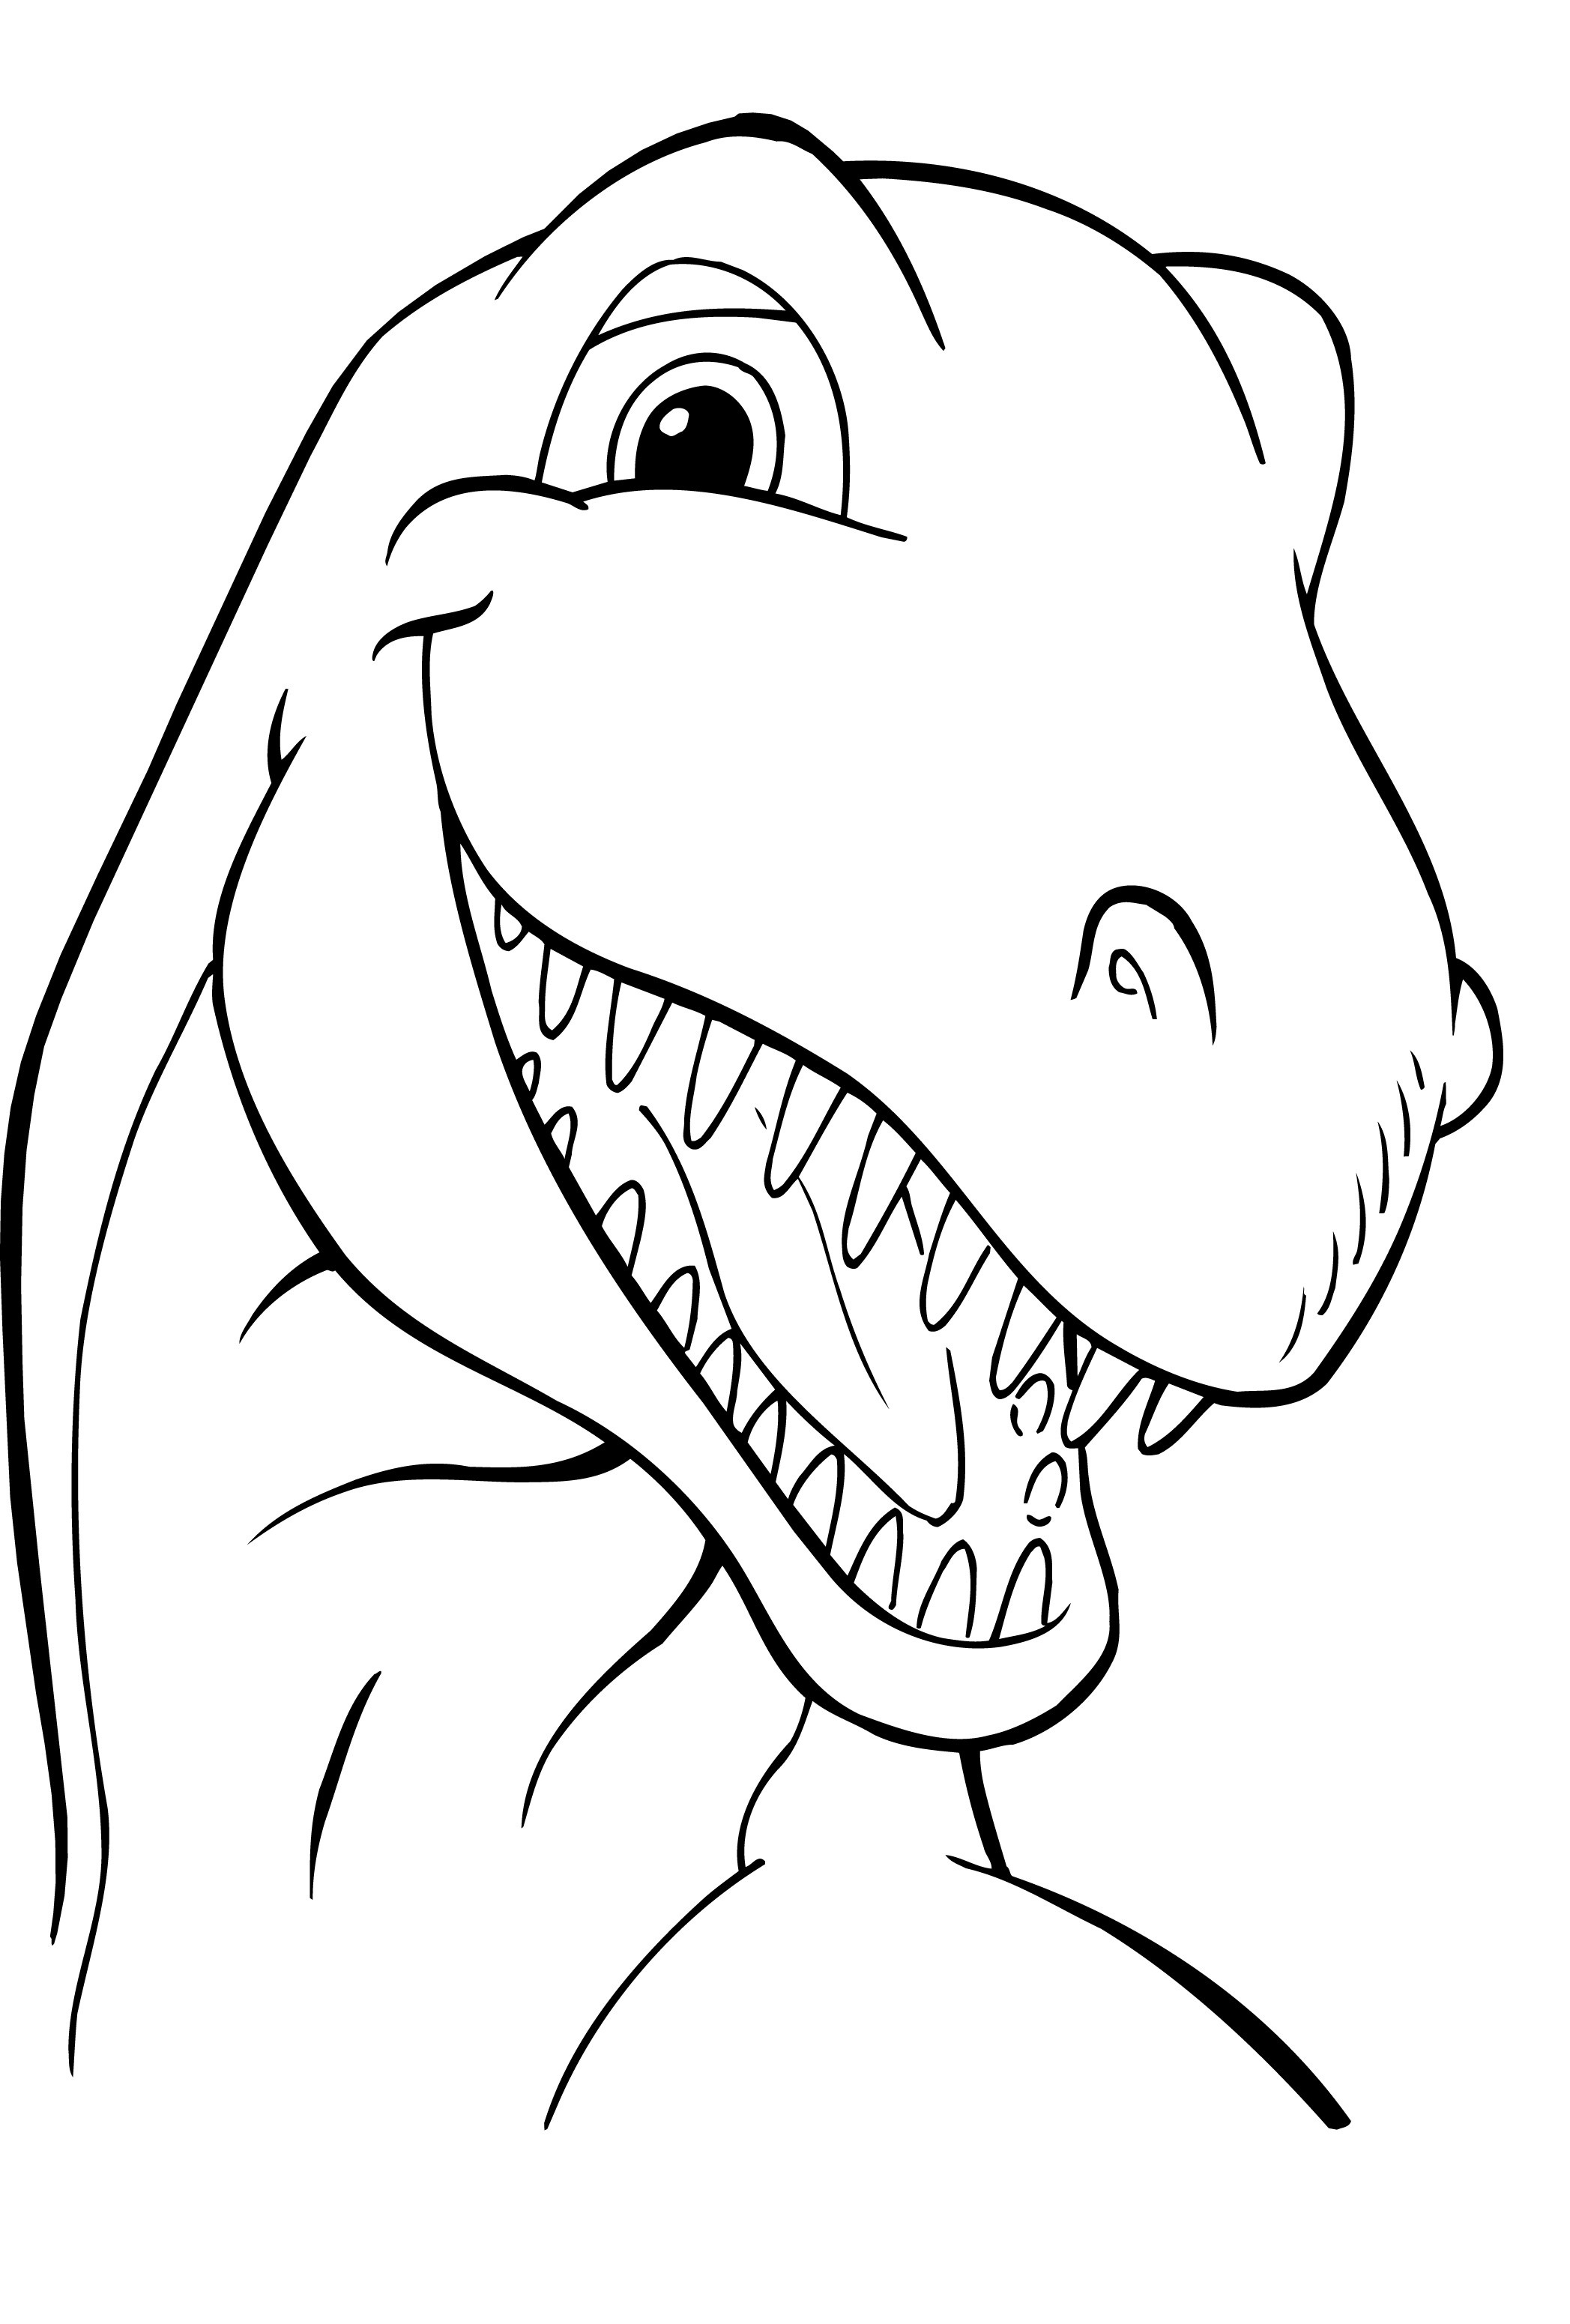 dinossaur coloring pages - photo#20